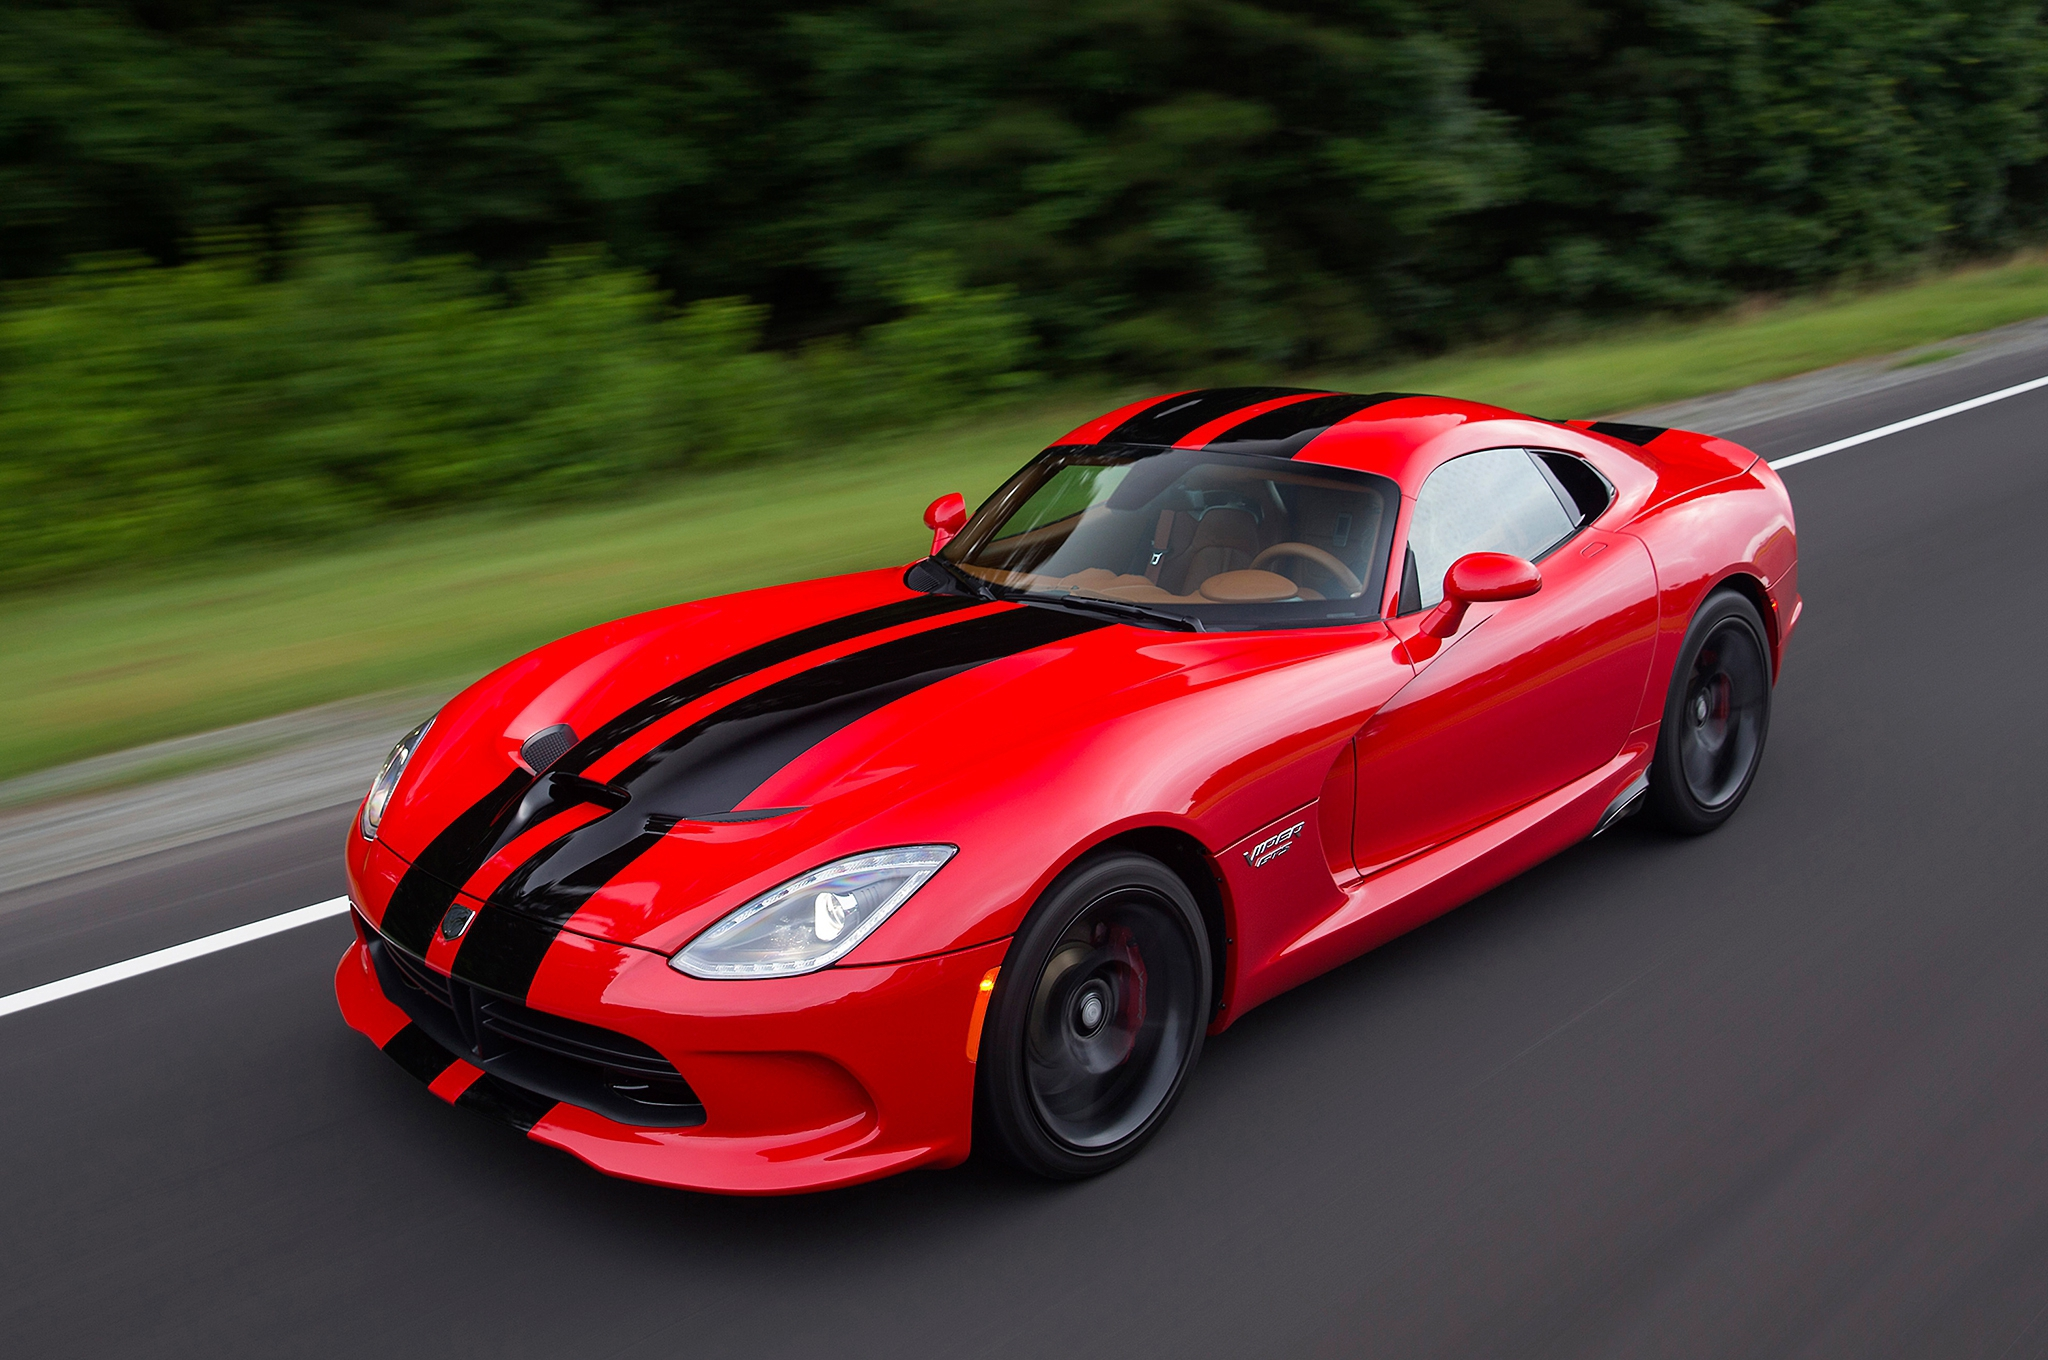 dodge viper wallpapers images photos pictures backgrounds